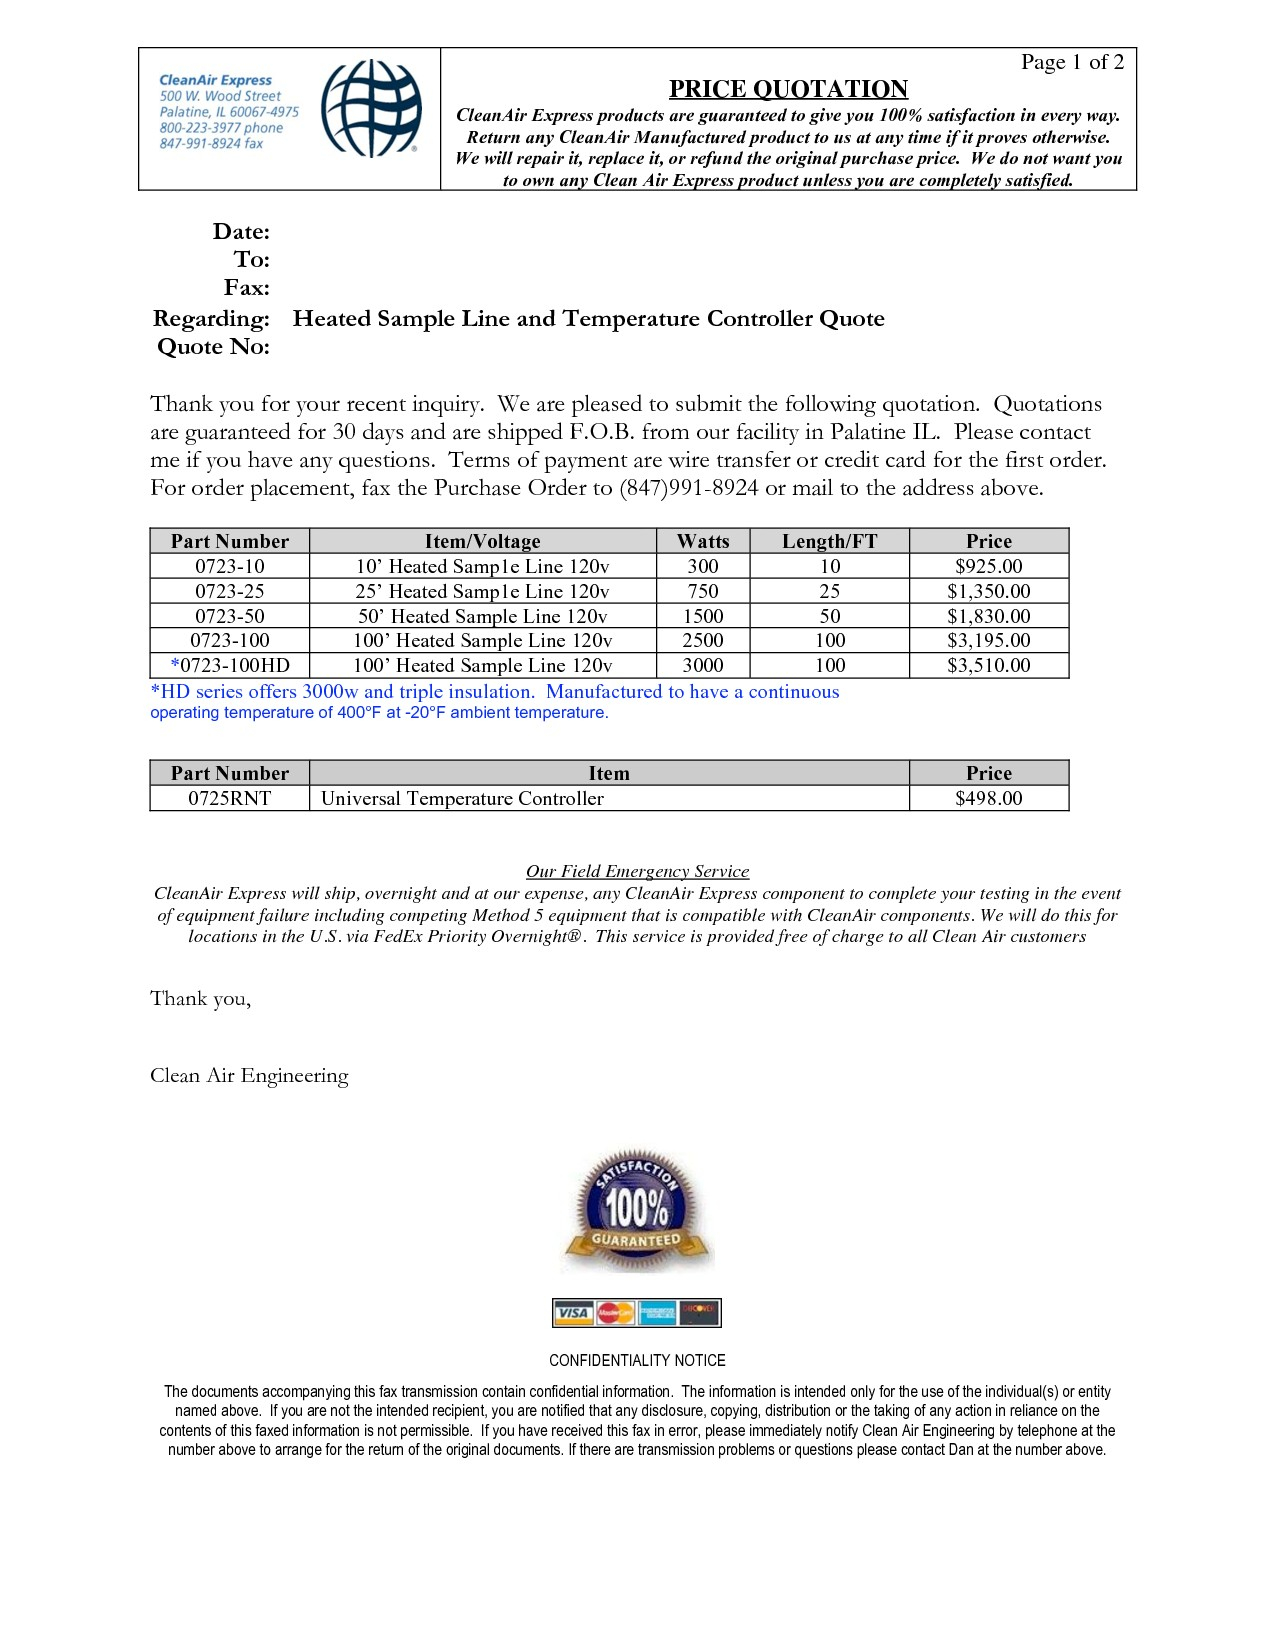 California Offer Letter Template - Business Quotation Template Best Price Quotation Biztree Doc